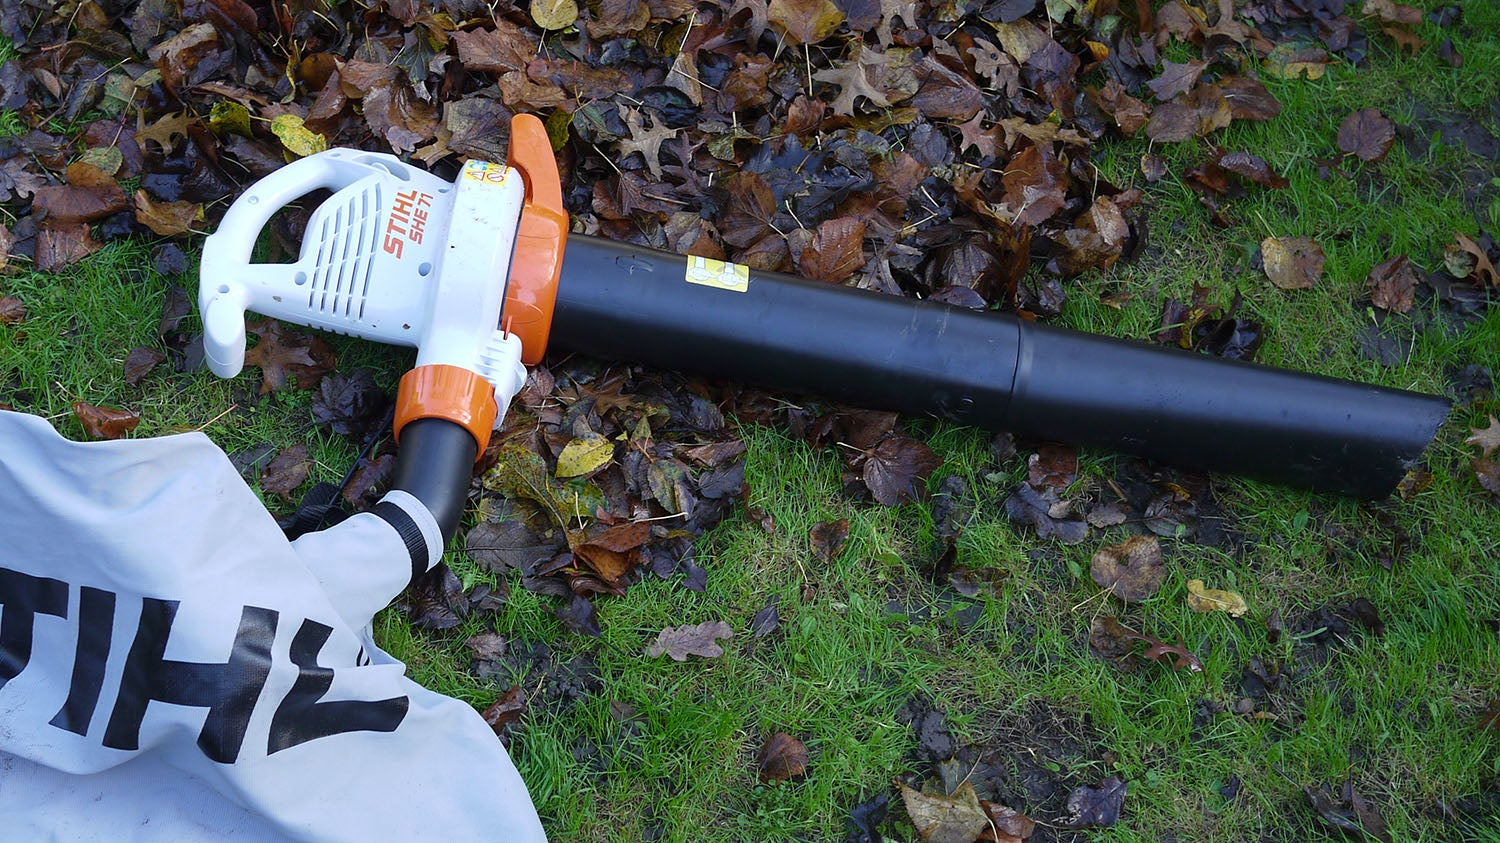 stihl she 71 review | trusted reviews